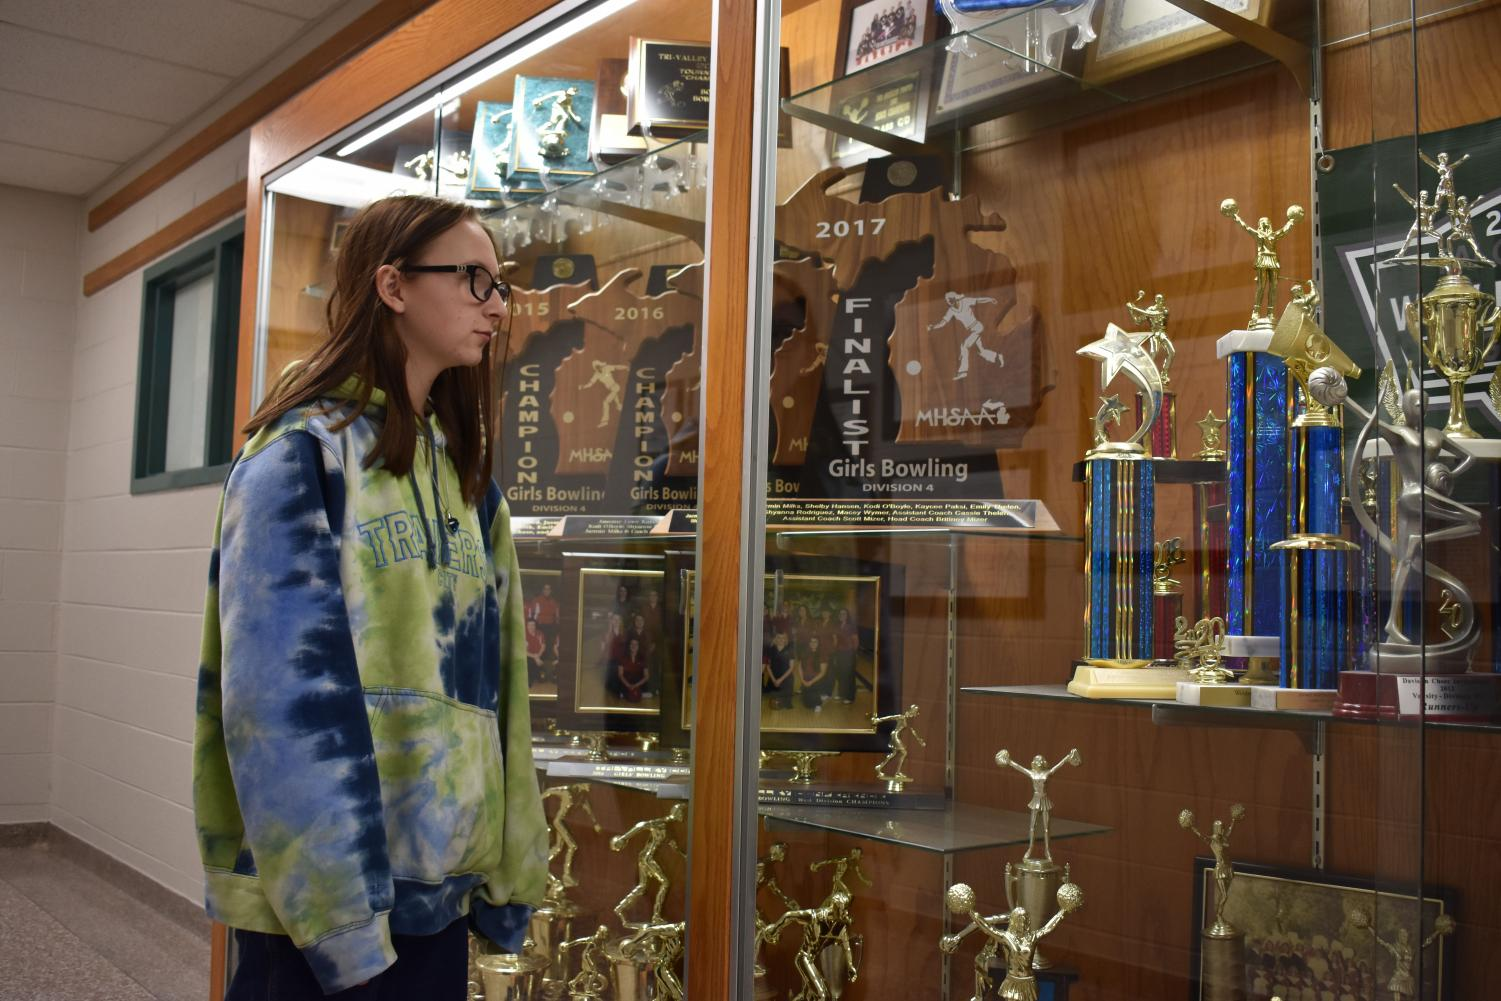 Bowler Shannan Mitchell admires St. Louis' past success.